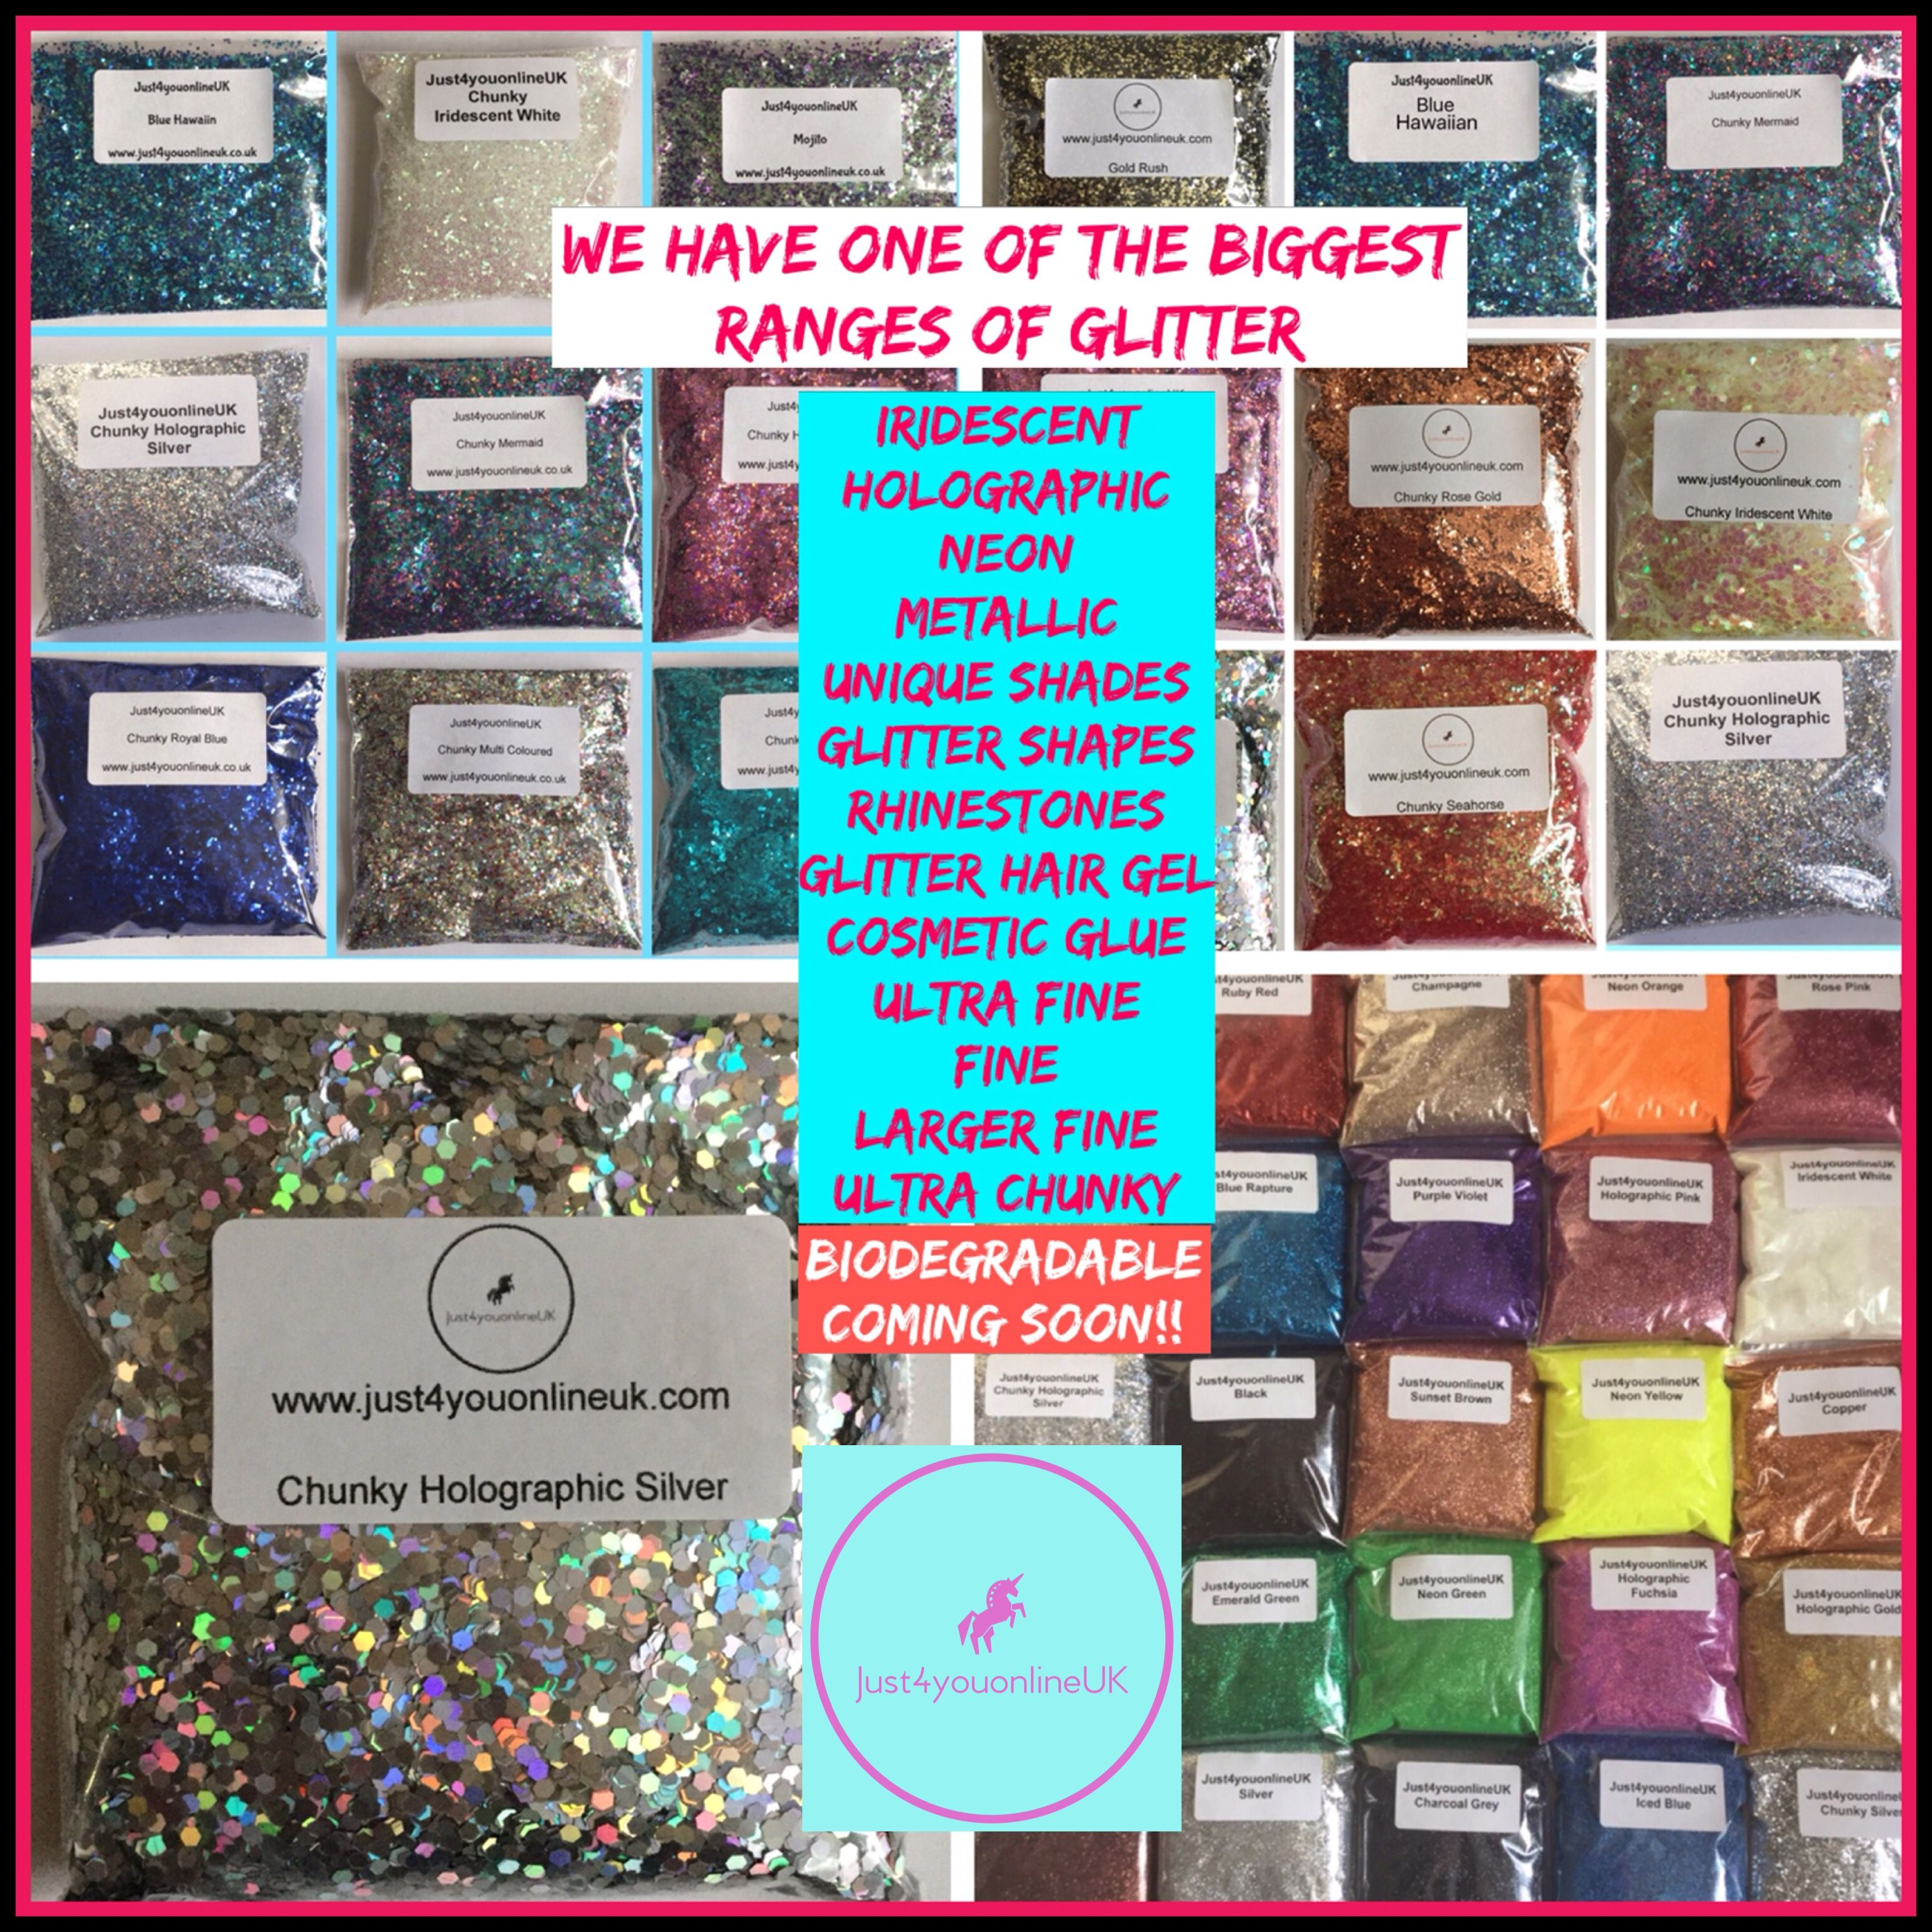 Unique glitter shades and flake sizes suitable for any